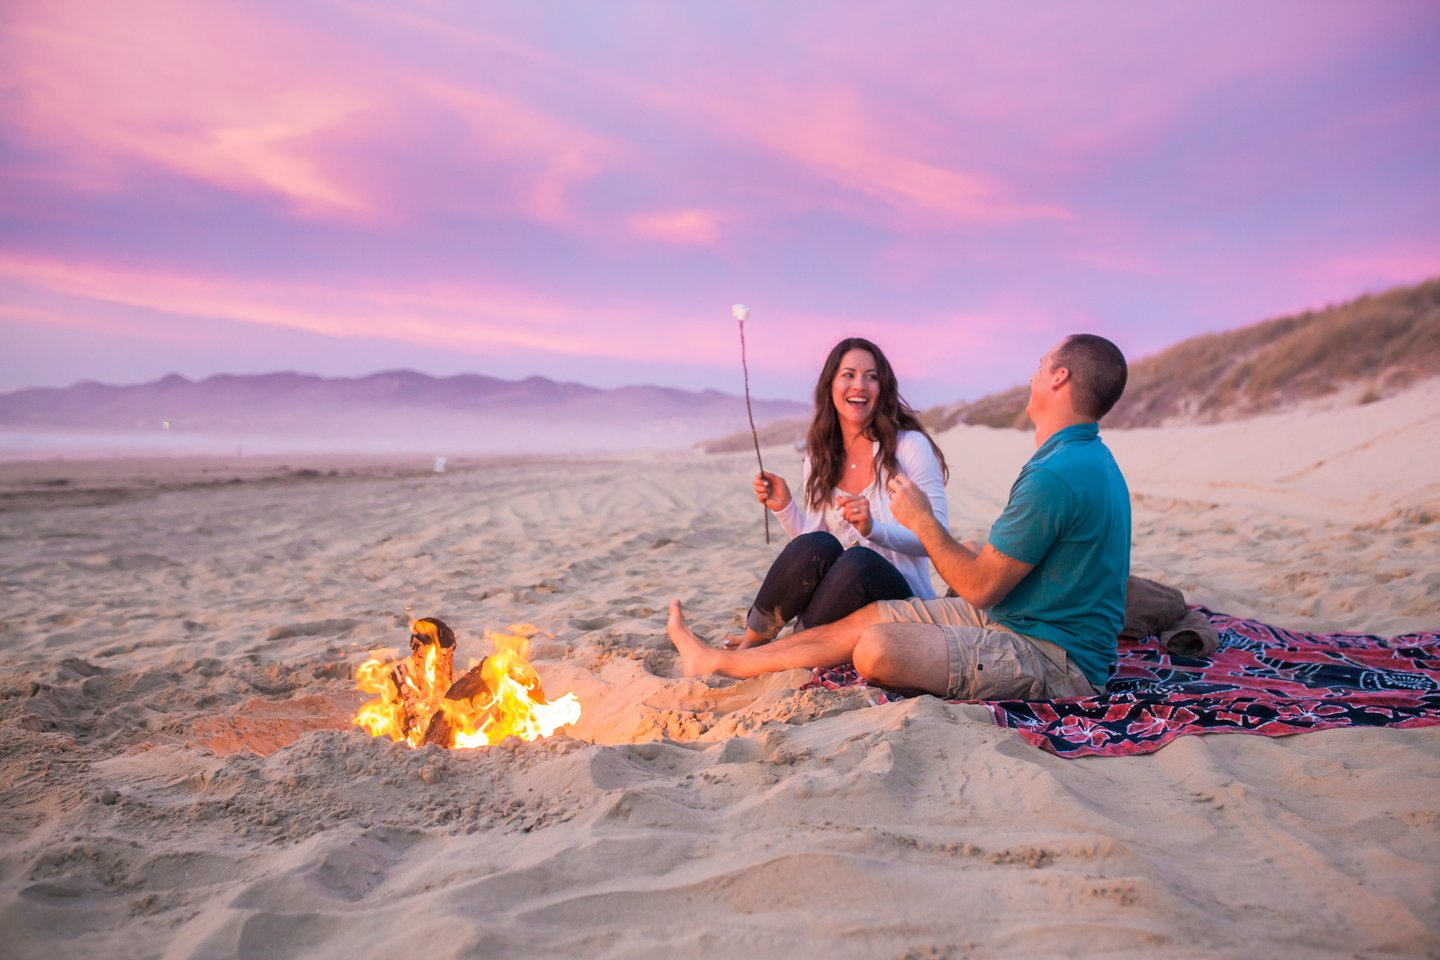 A couple laughs happily as they barbecue on a beach.